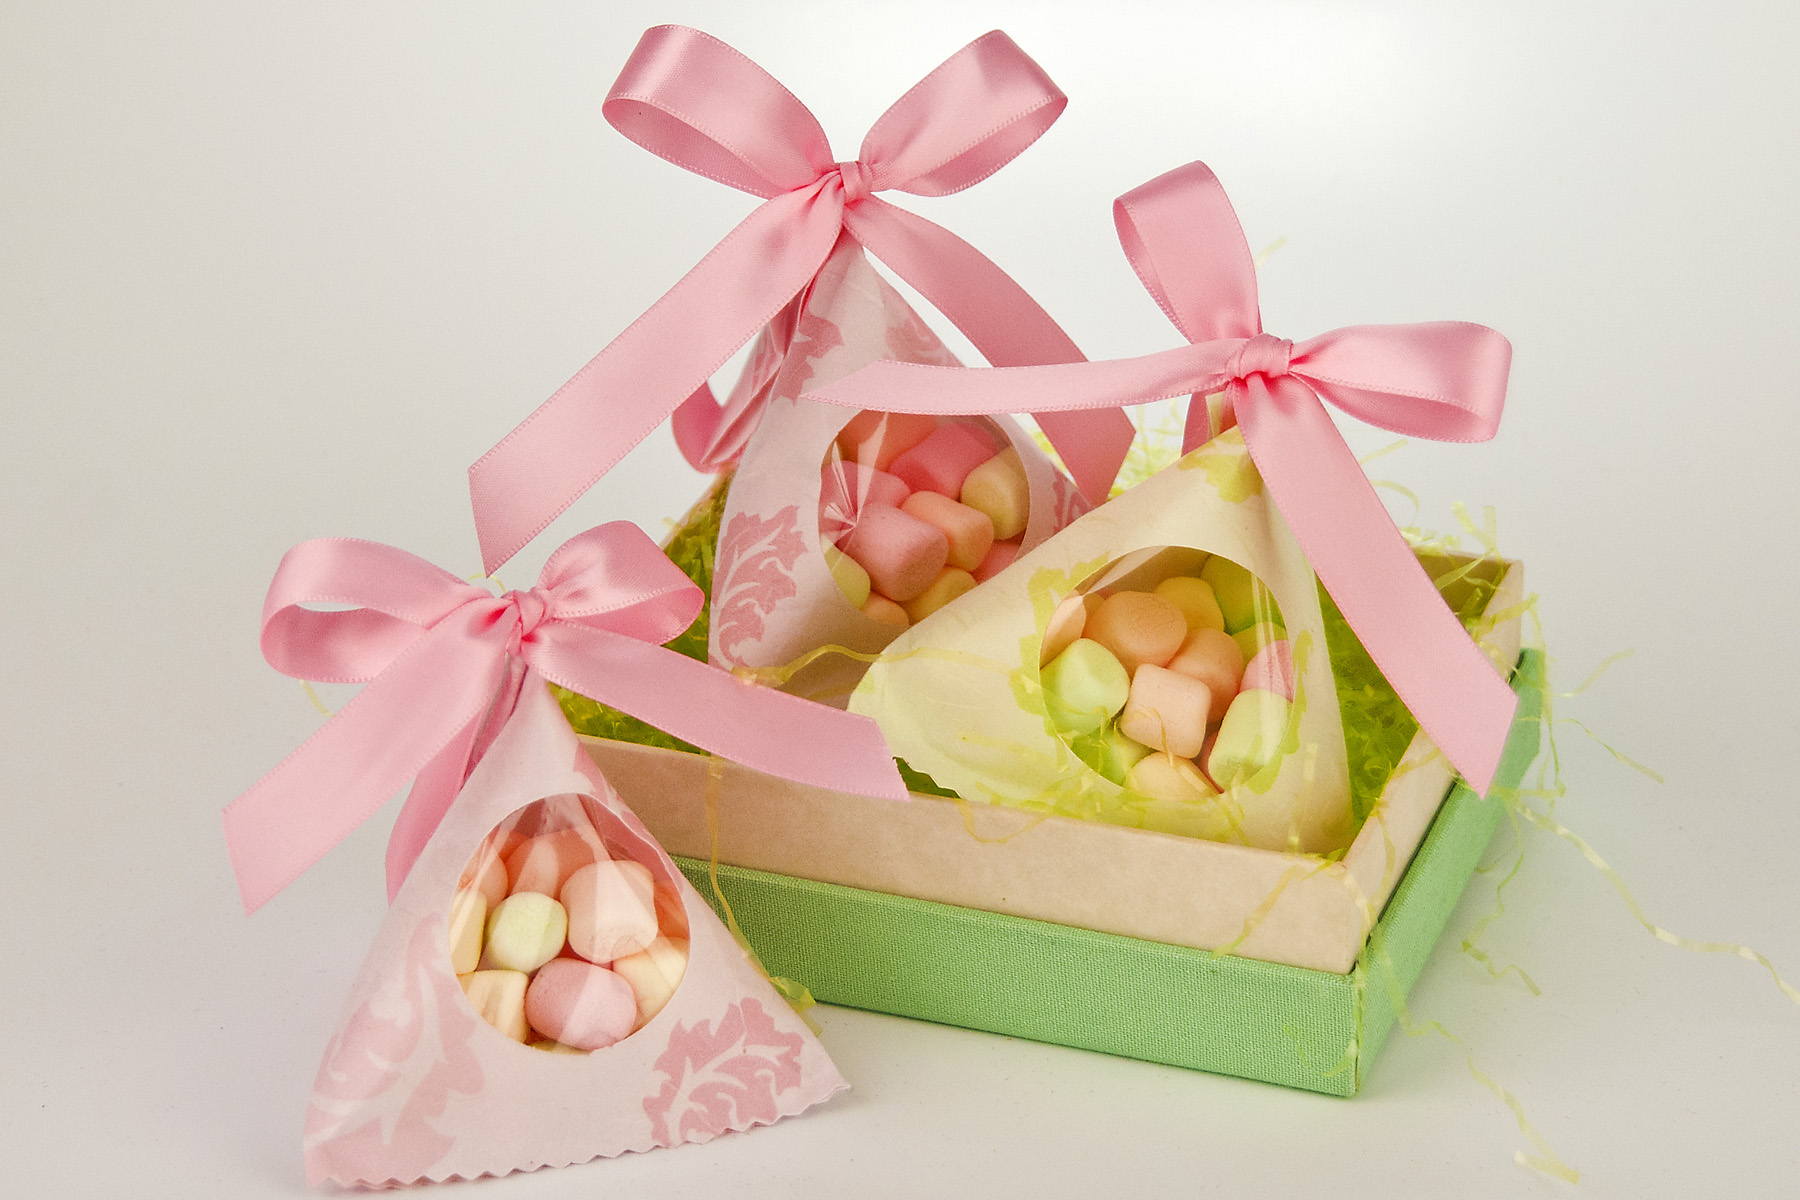 Easter Goody Bags, Favor Pails, Easter Cellophane Bags and More for Easter Candy and Sweet Treats! Easter candy and goodies deserve an adorable delivery to recipients and guests. Take a look at our selection of Easter favor boxes, cellophane bags and popcorn boxes to get you started.